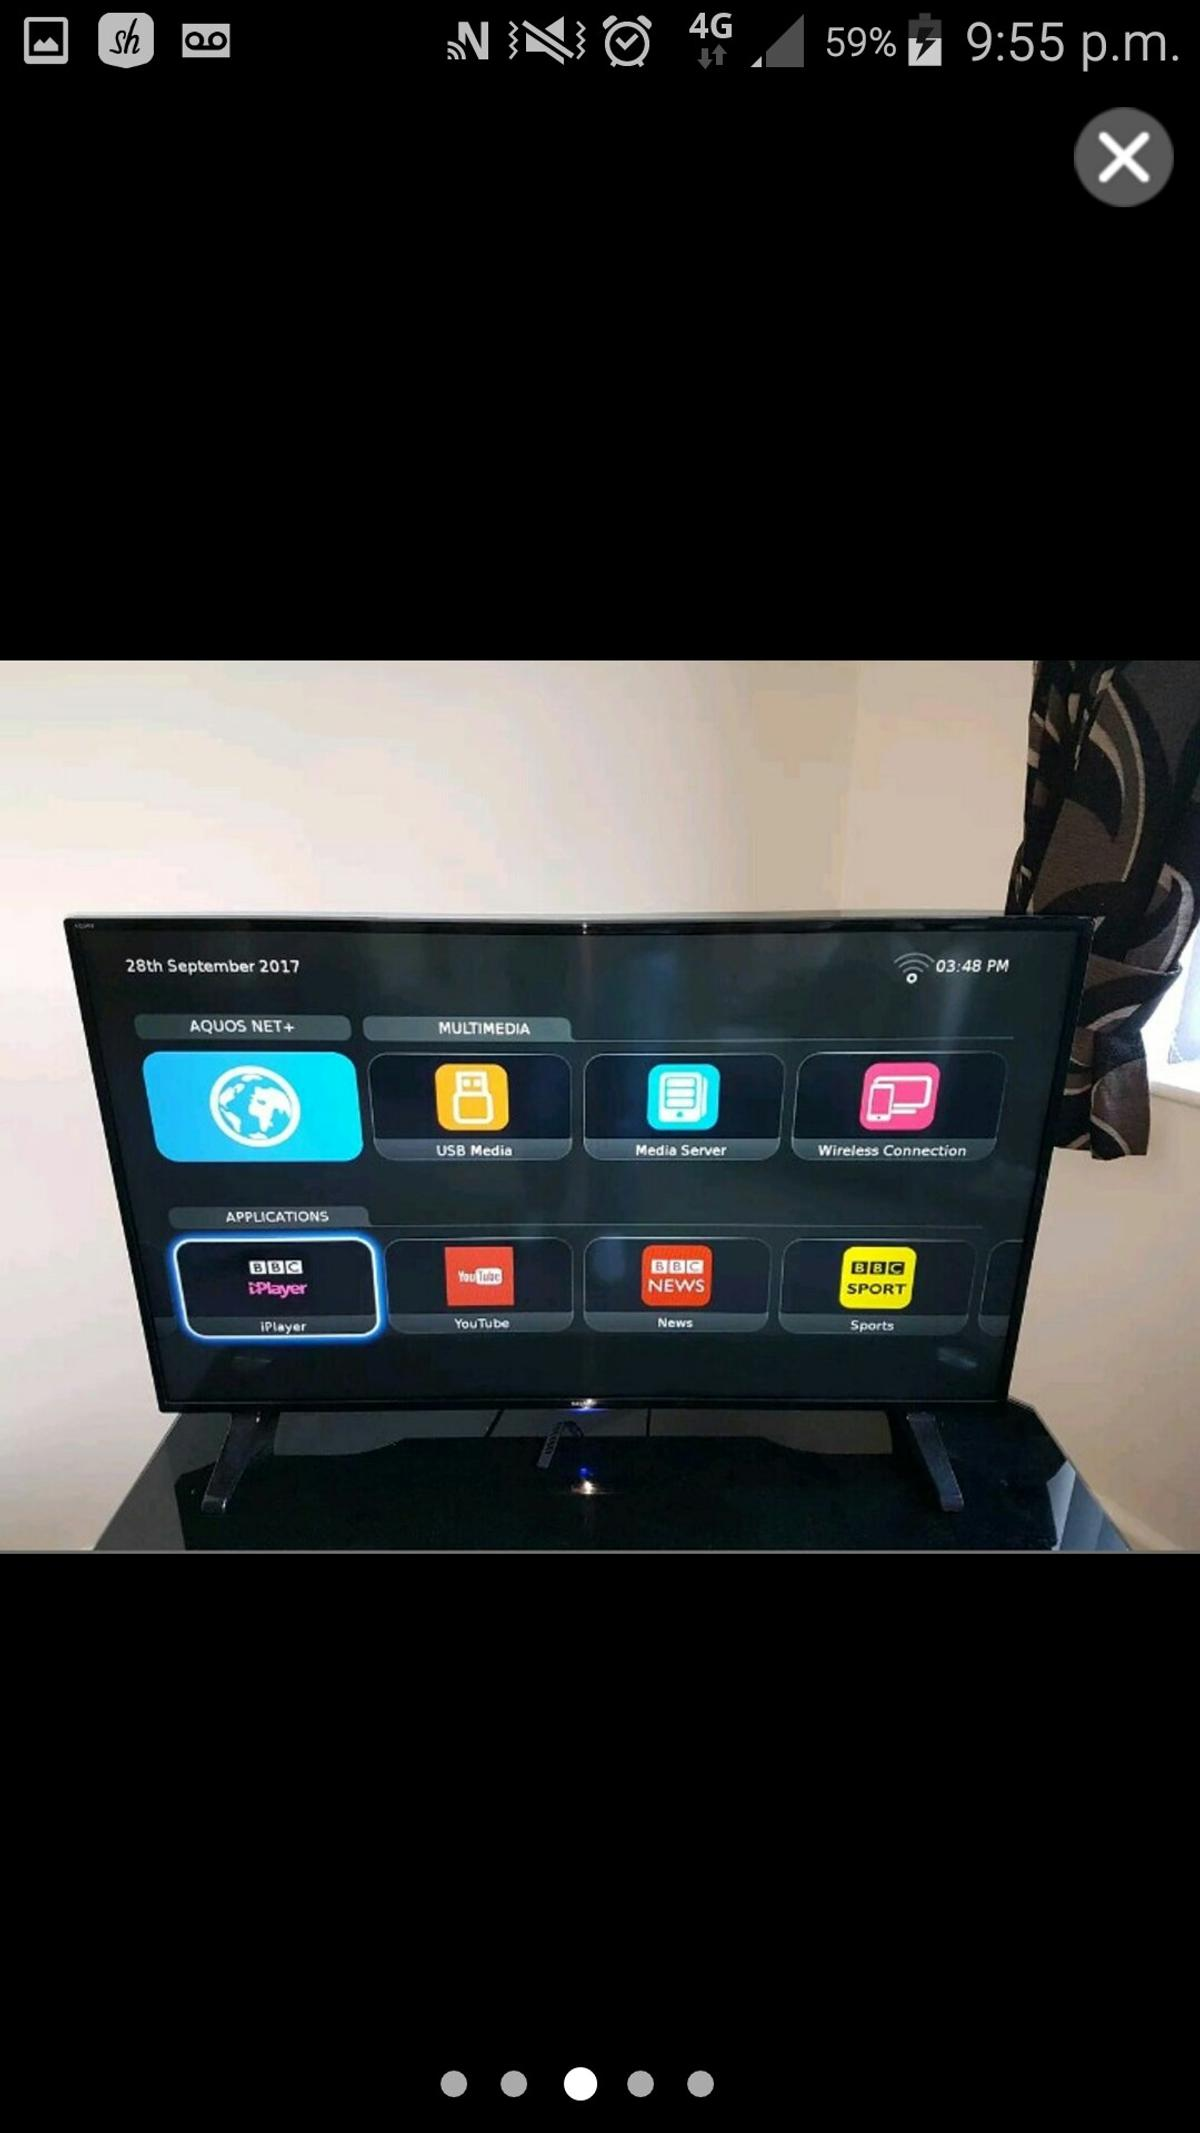 SMART TV 43 INCH FULL HD WITH WIFI in BB12 Burnley for £150 00 for